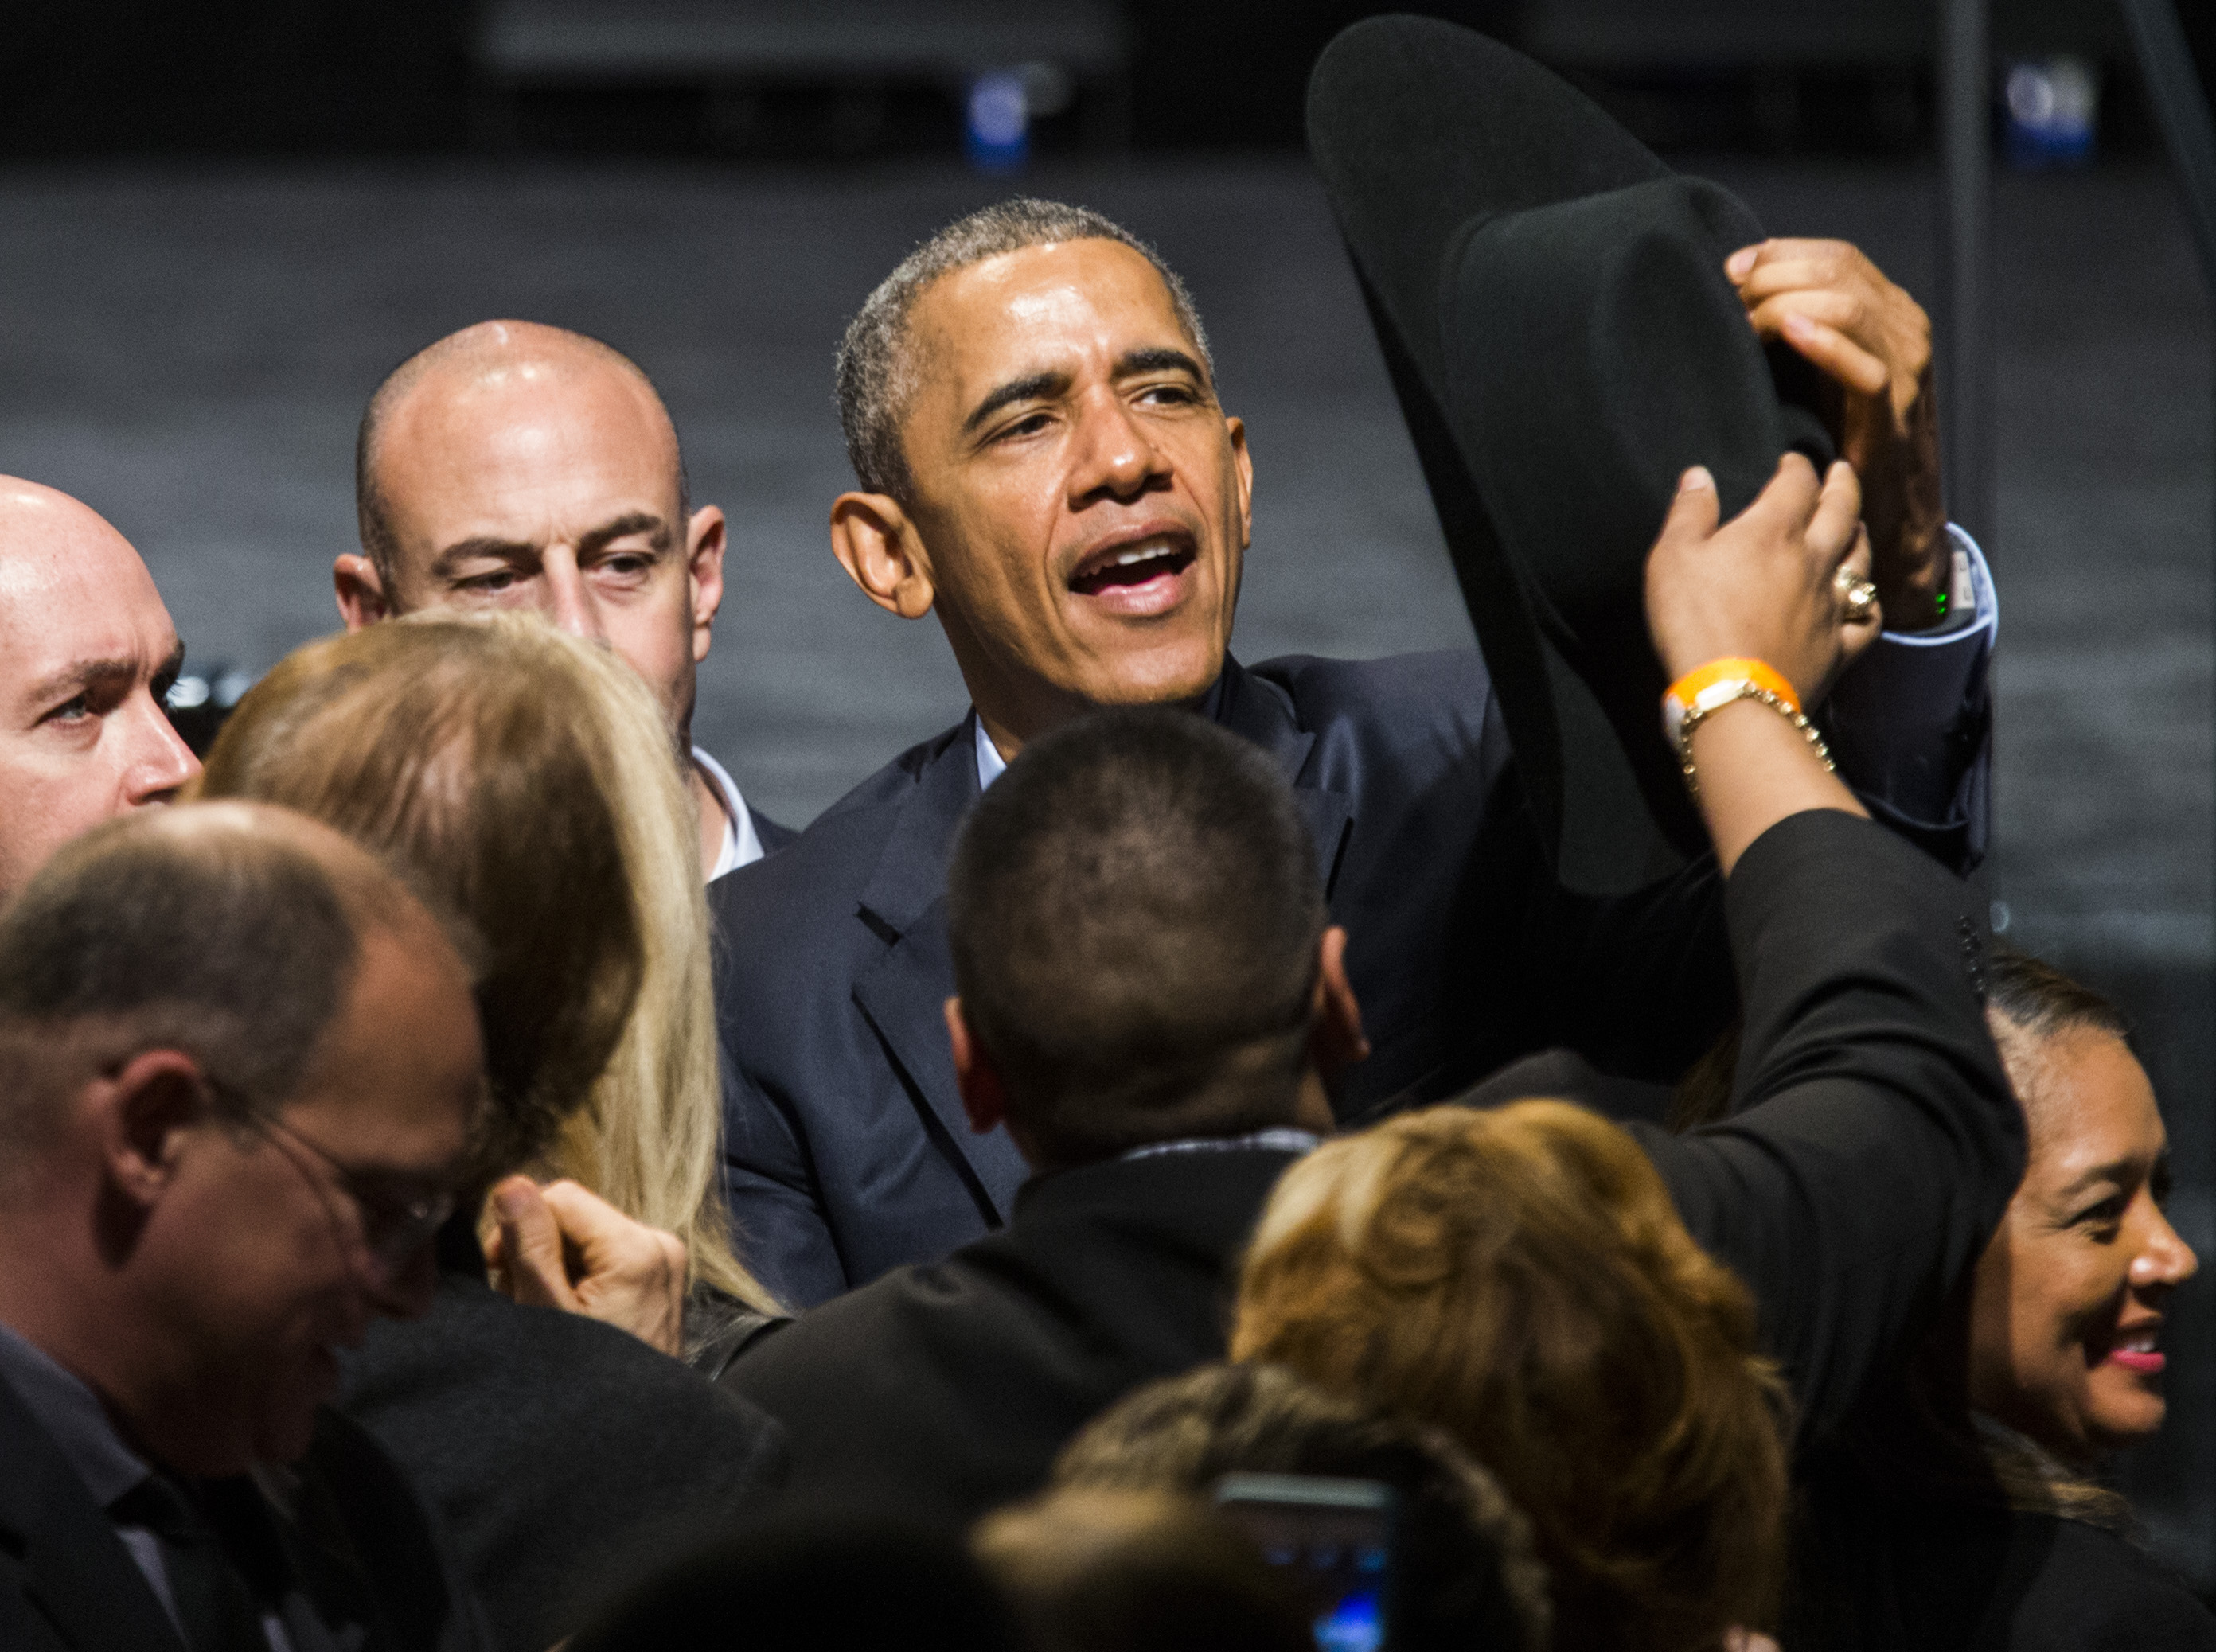 President Barack Obama tries on a cowboy hat from a member of the crowd after speaking at a private Democratic National Committee event at Gilley's Club Dallas on March 12, 2016 in Dallas, Texas. (Ashley Landis-Pool/Getty Images)